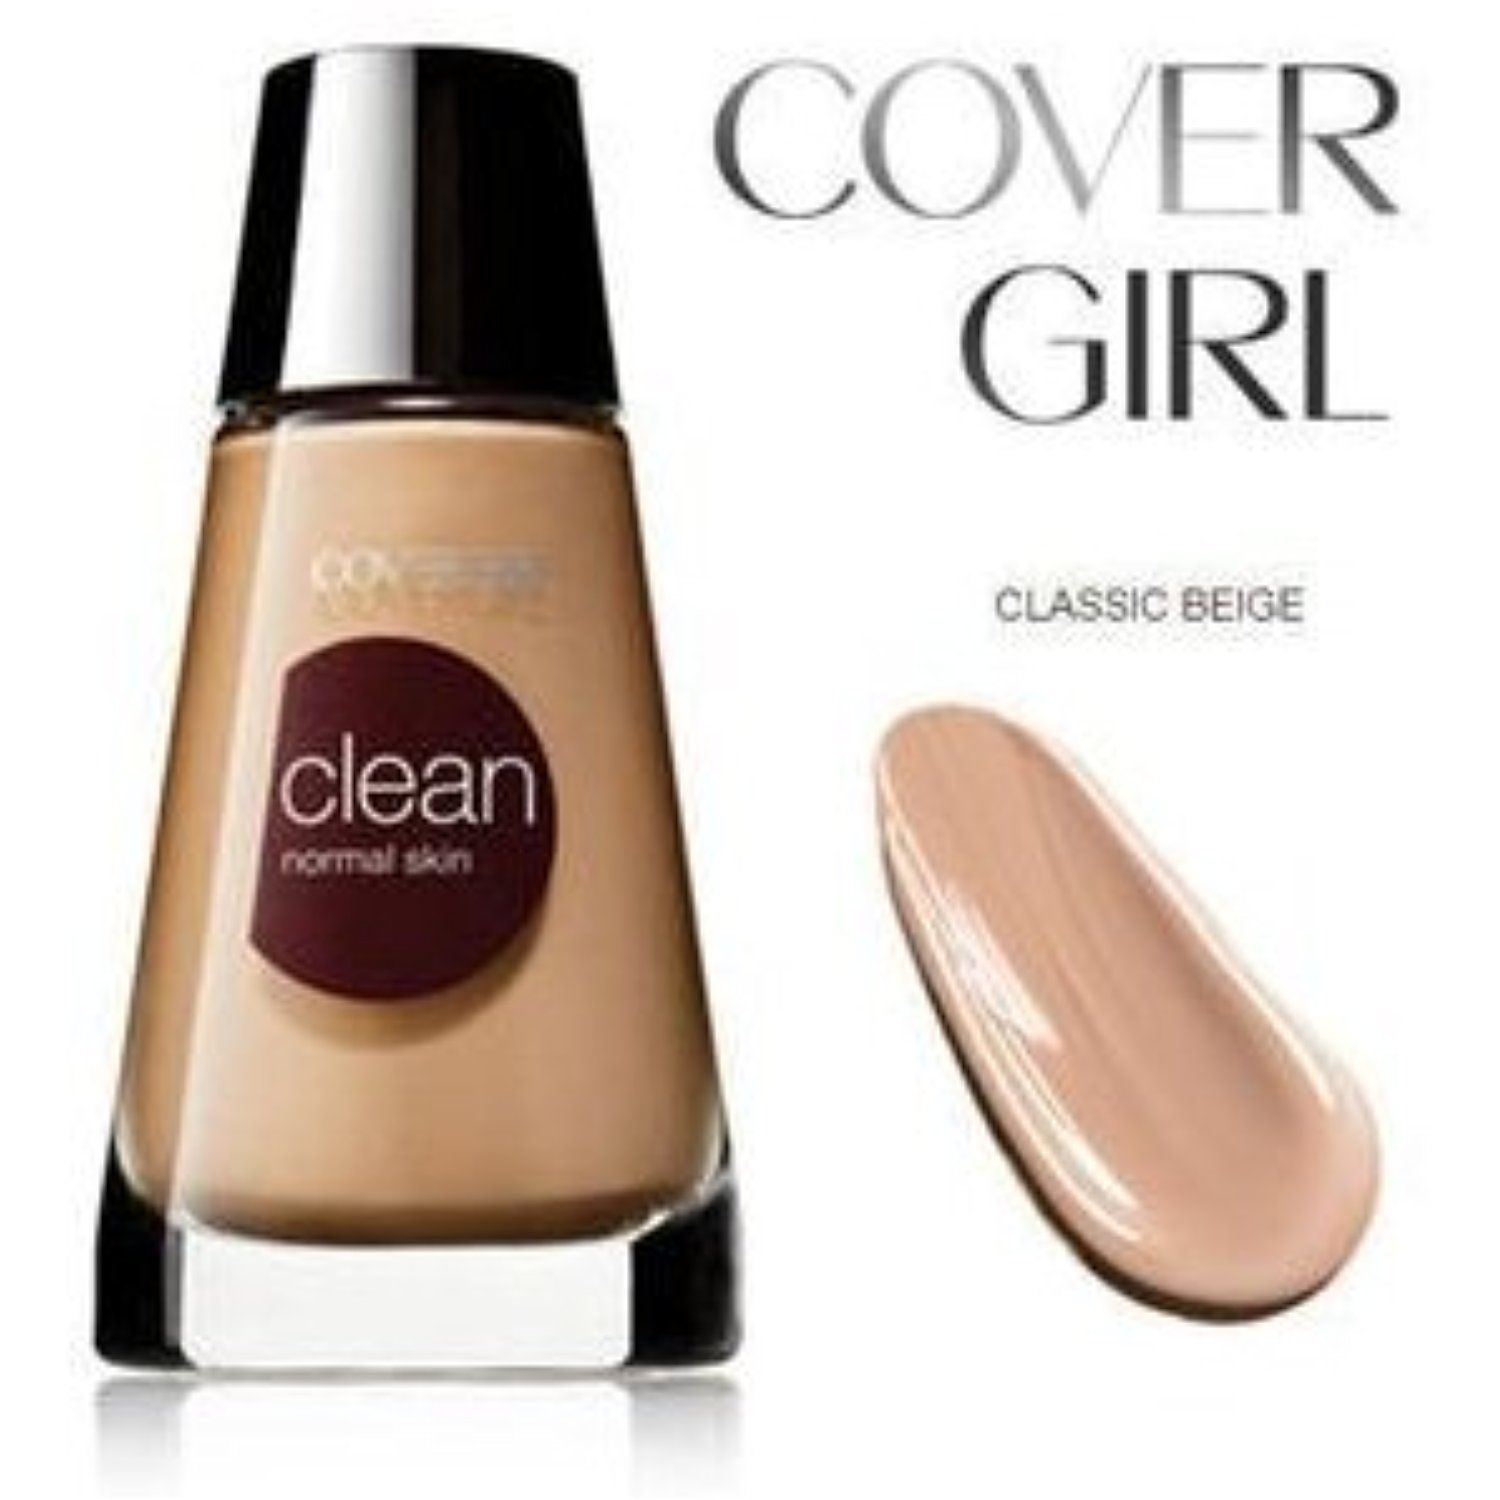 CoverGirl Clean Liquid Make Up 130 Classic Beige (Qty. Of